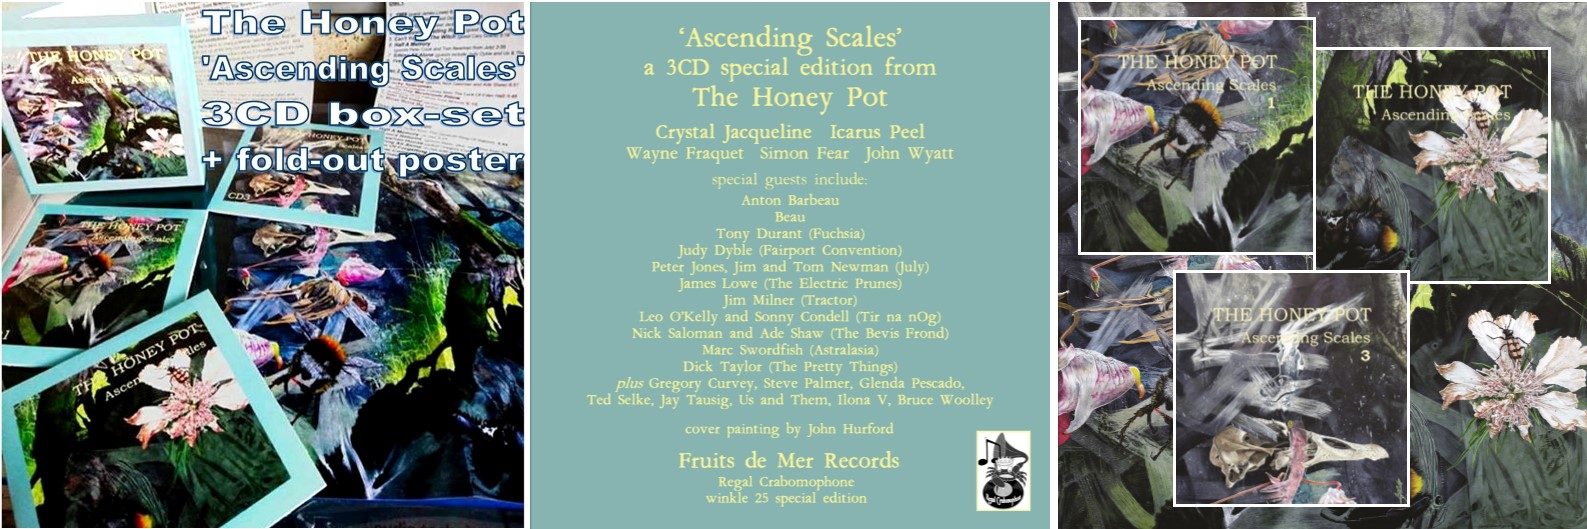 Ascending Scales 3CD set